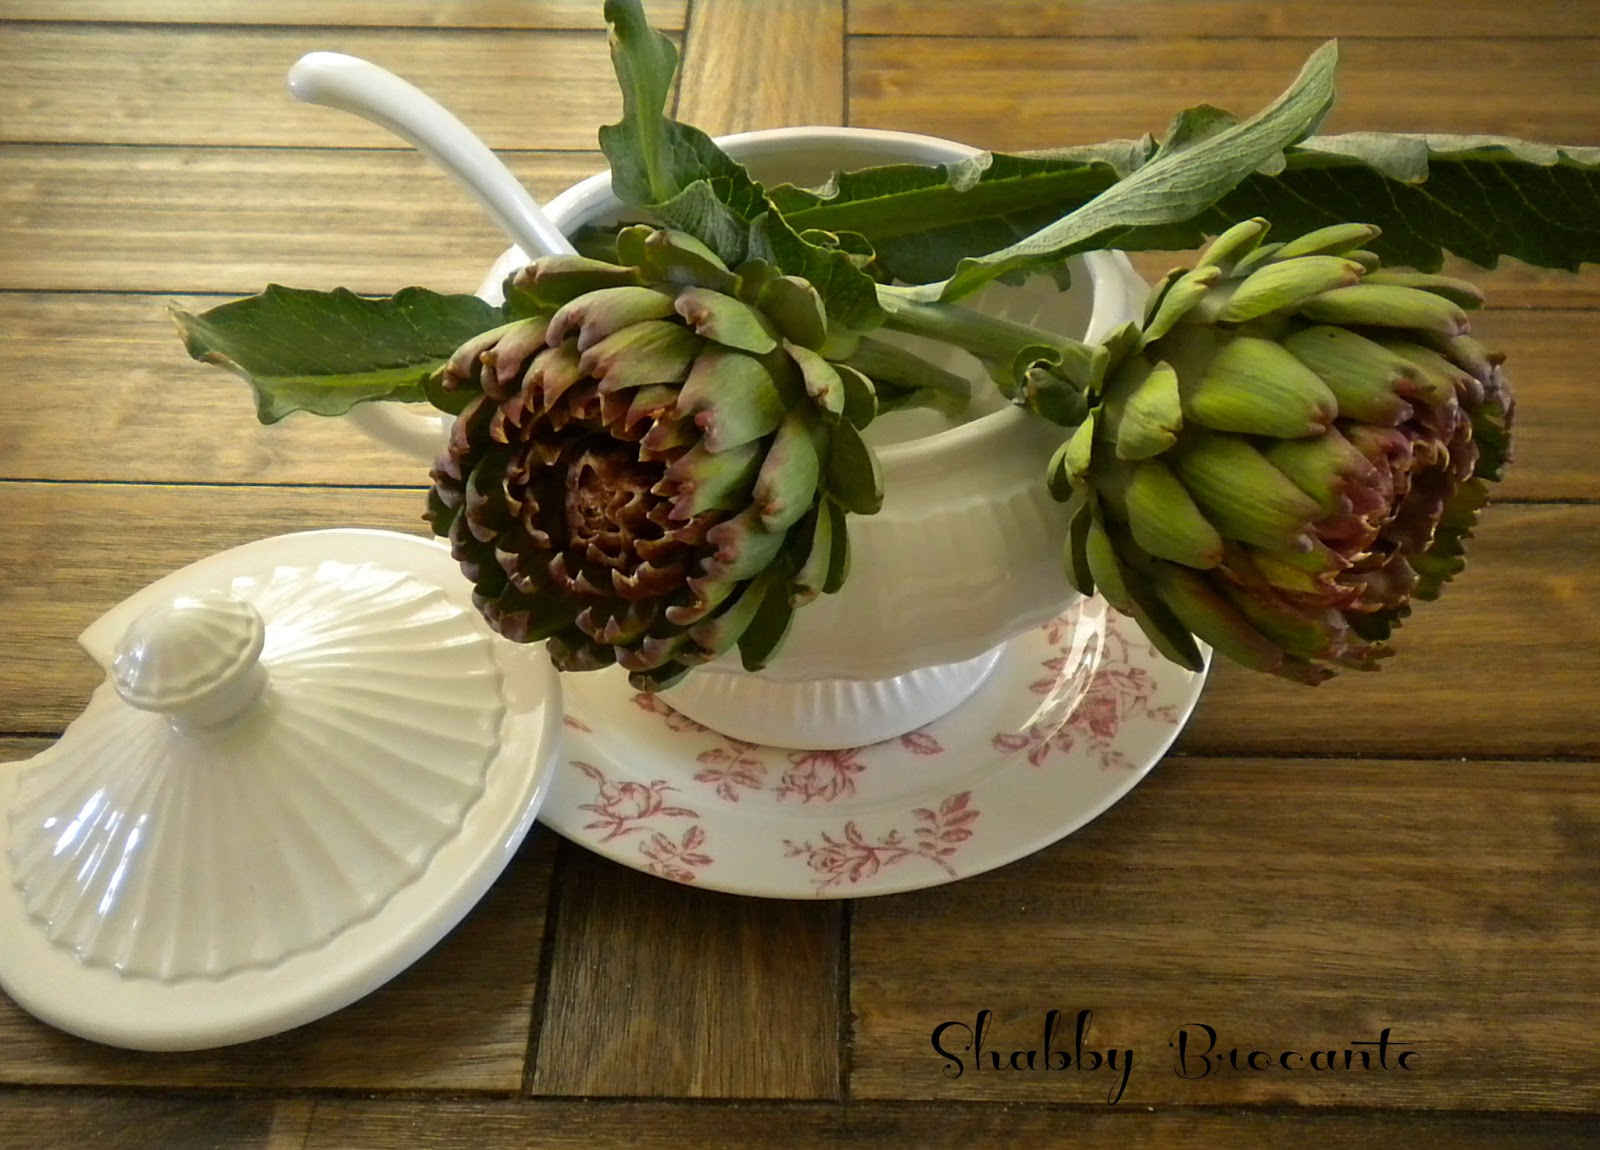 Shabby brocante artichokes preparing them and using them for Artichoke decoration